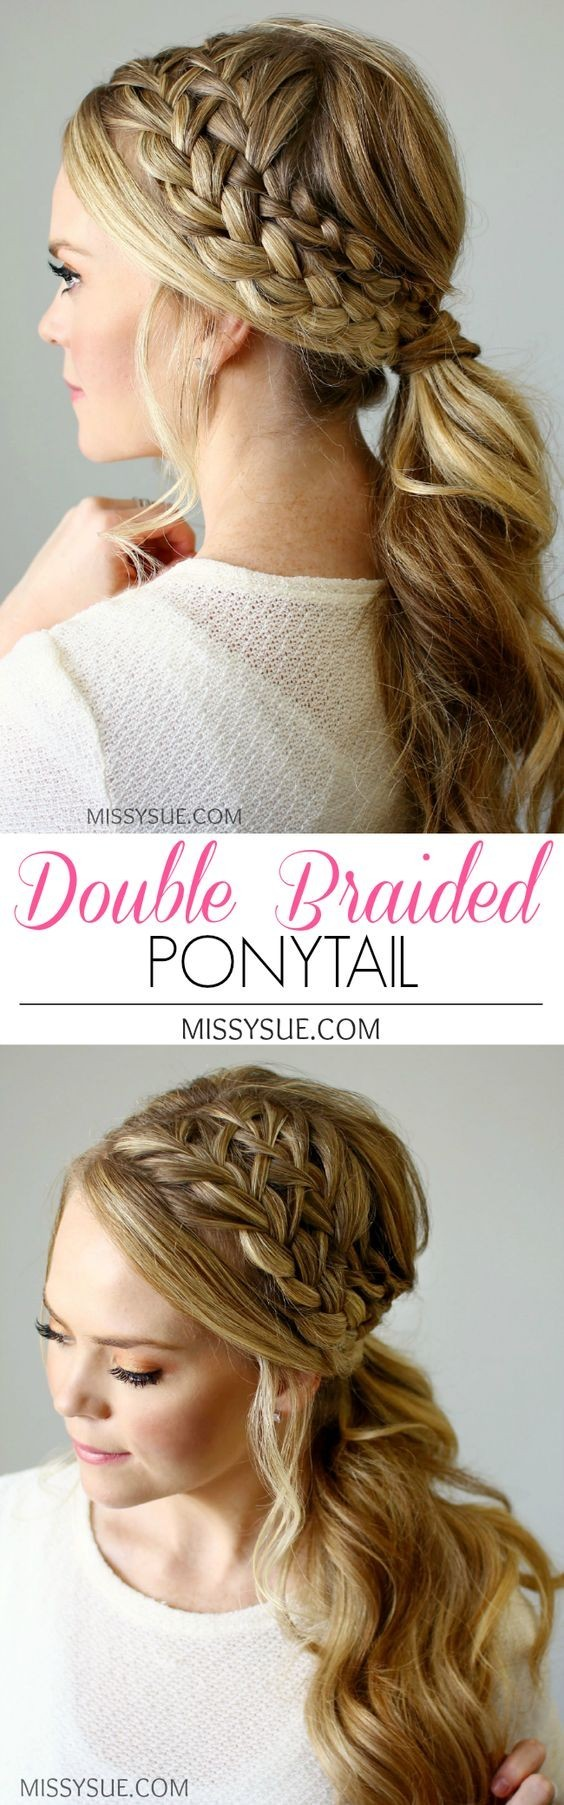 18 Cute Braided Ponytail Styles Popular Haircuts